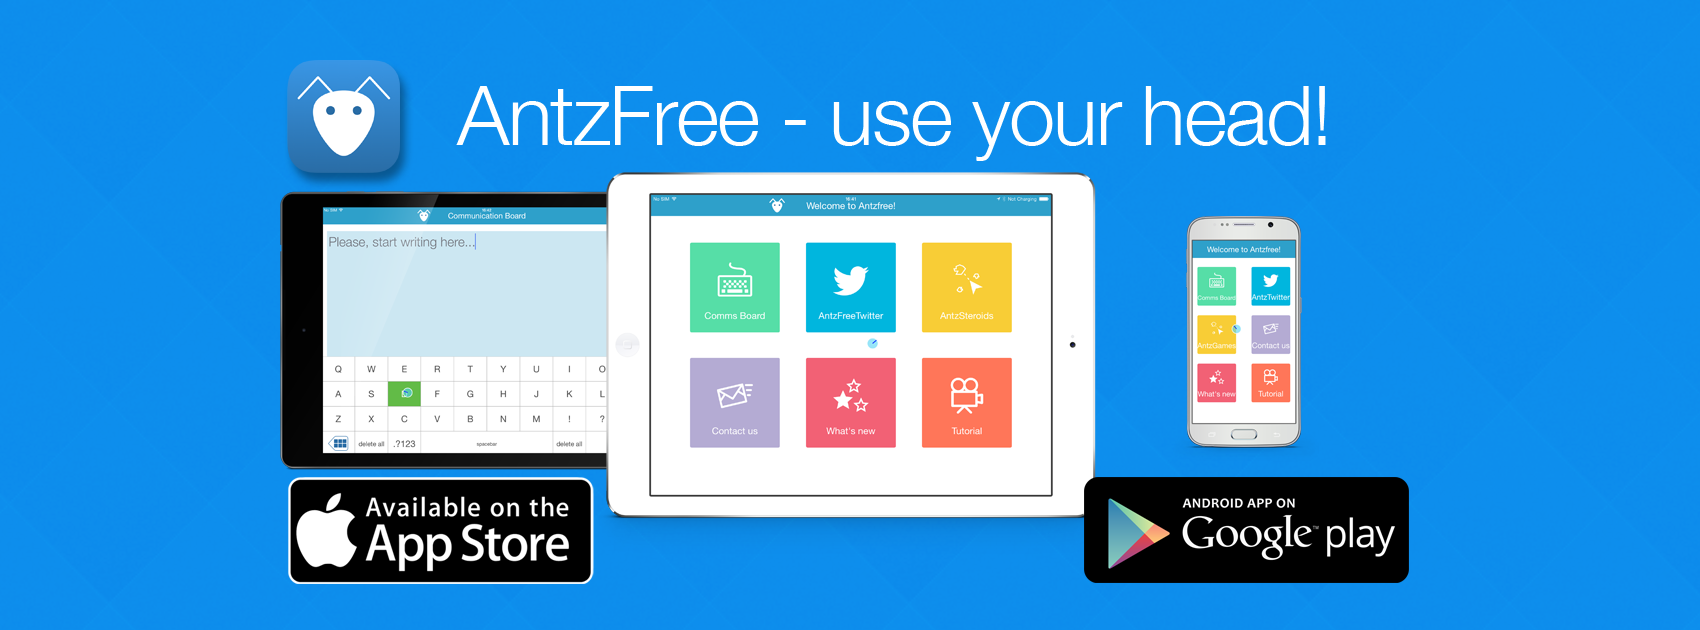 AntzFree Facebook logo: It's a free iOS and Android app that can give people who have limited use of their upper limbs the control of their device.